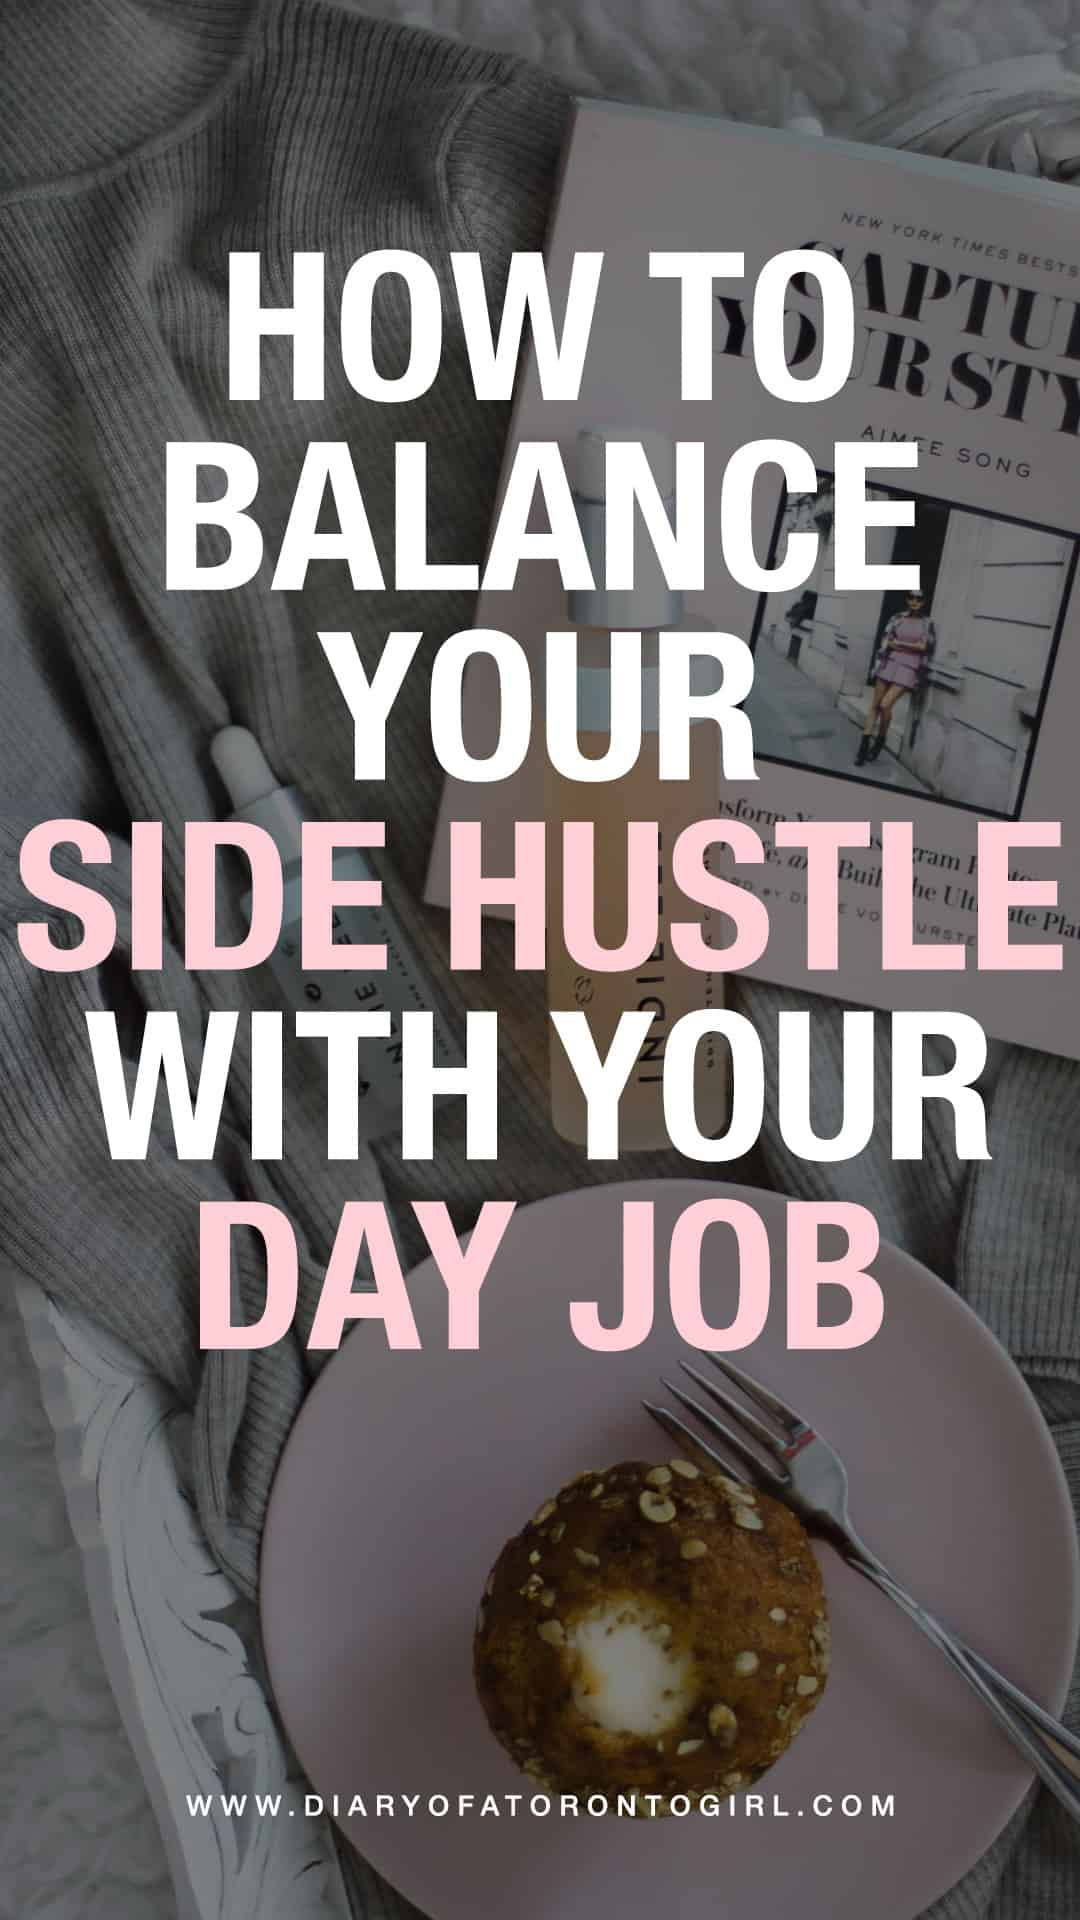 Looking for helpful tips on how to manage a side hustle with a full-time job? Here's how to balance your side gig with your day job!